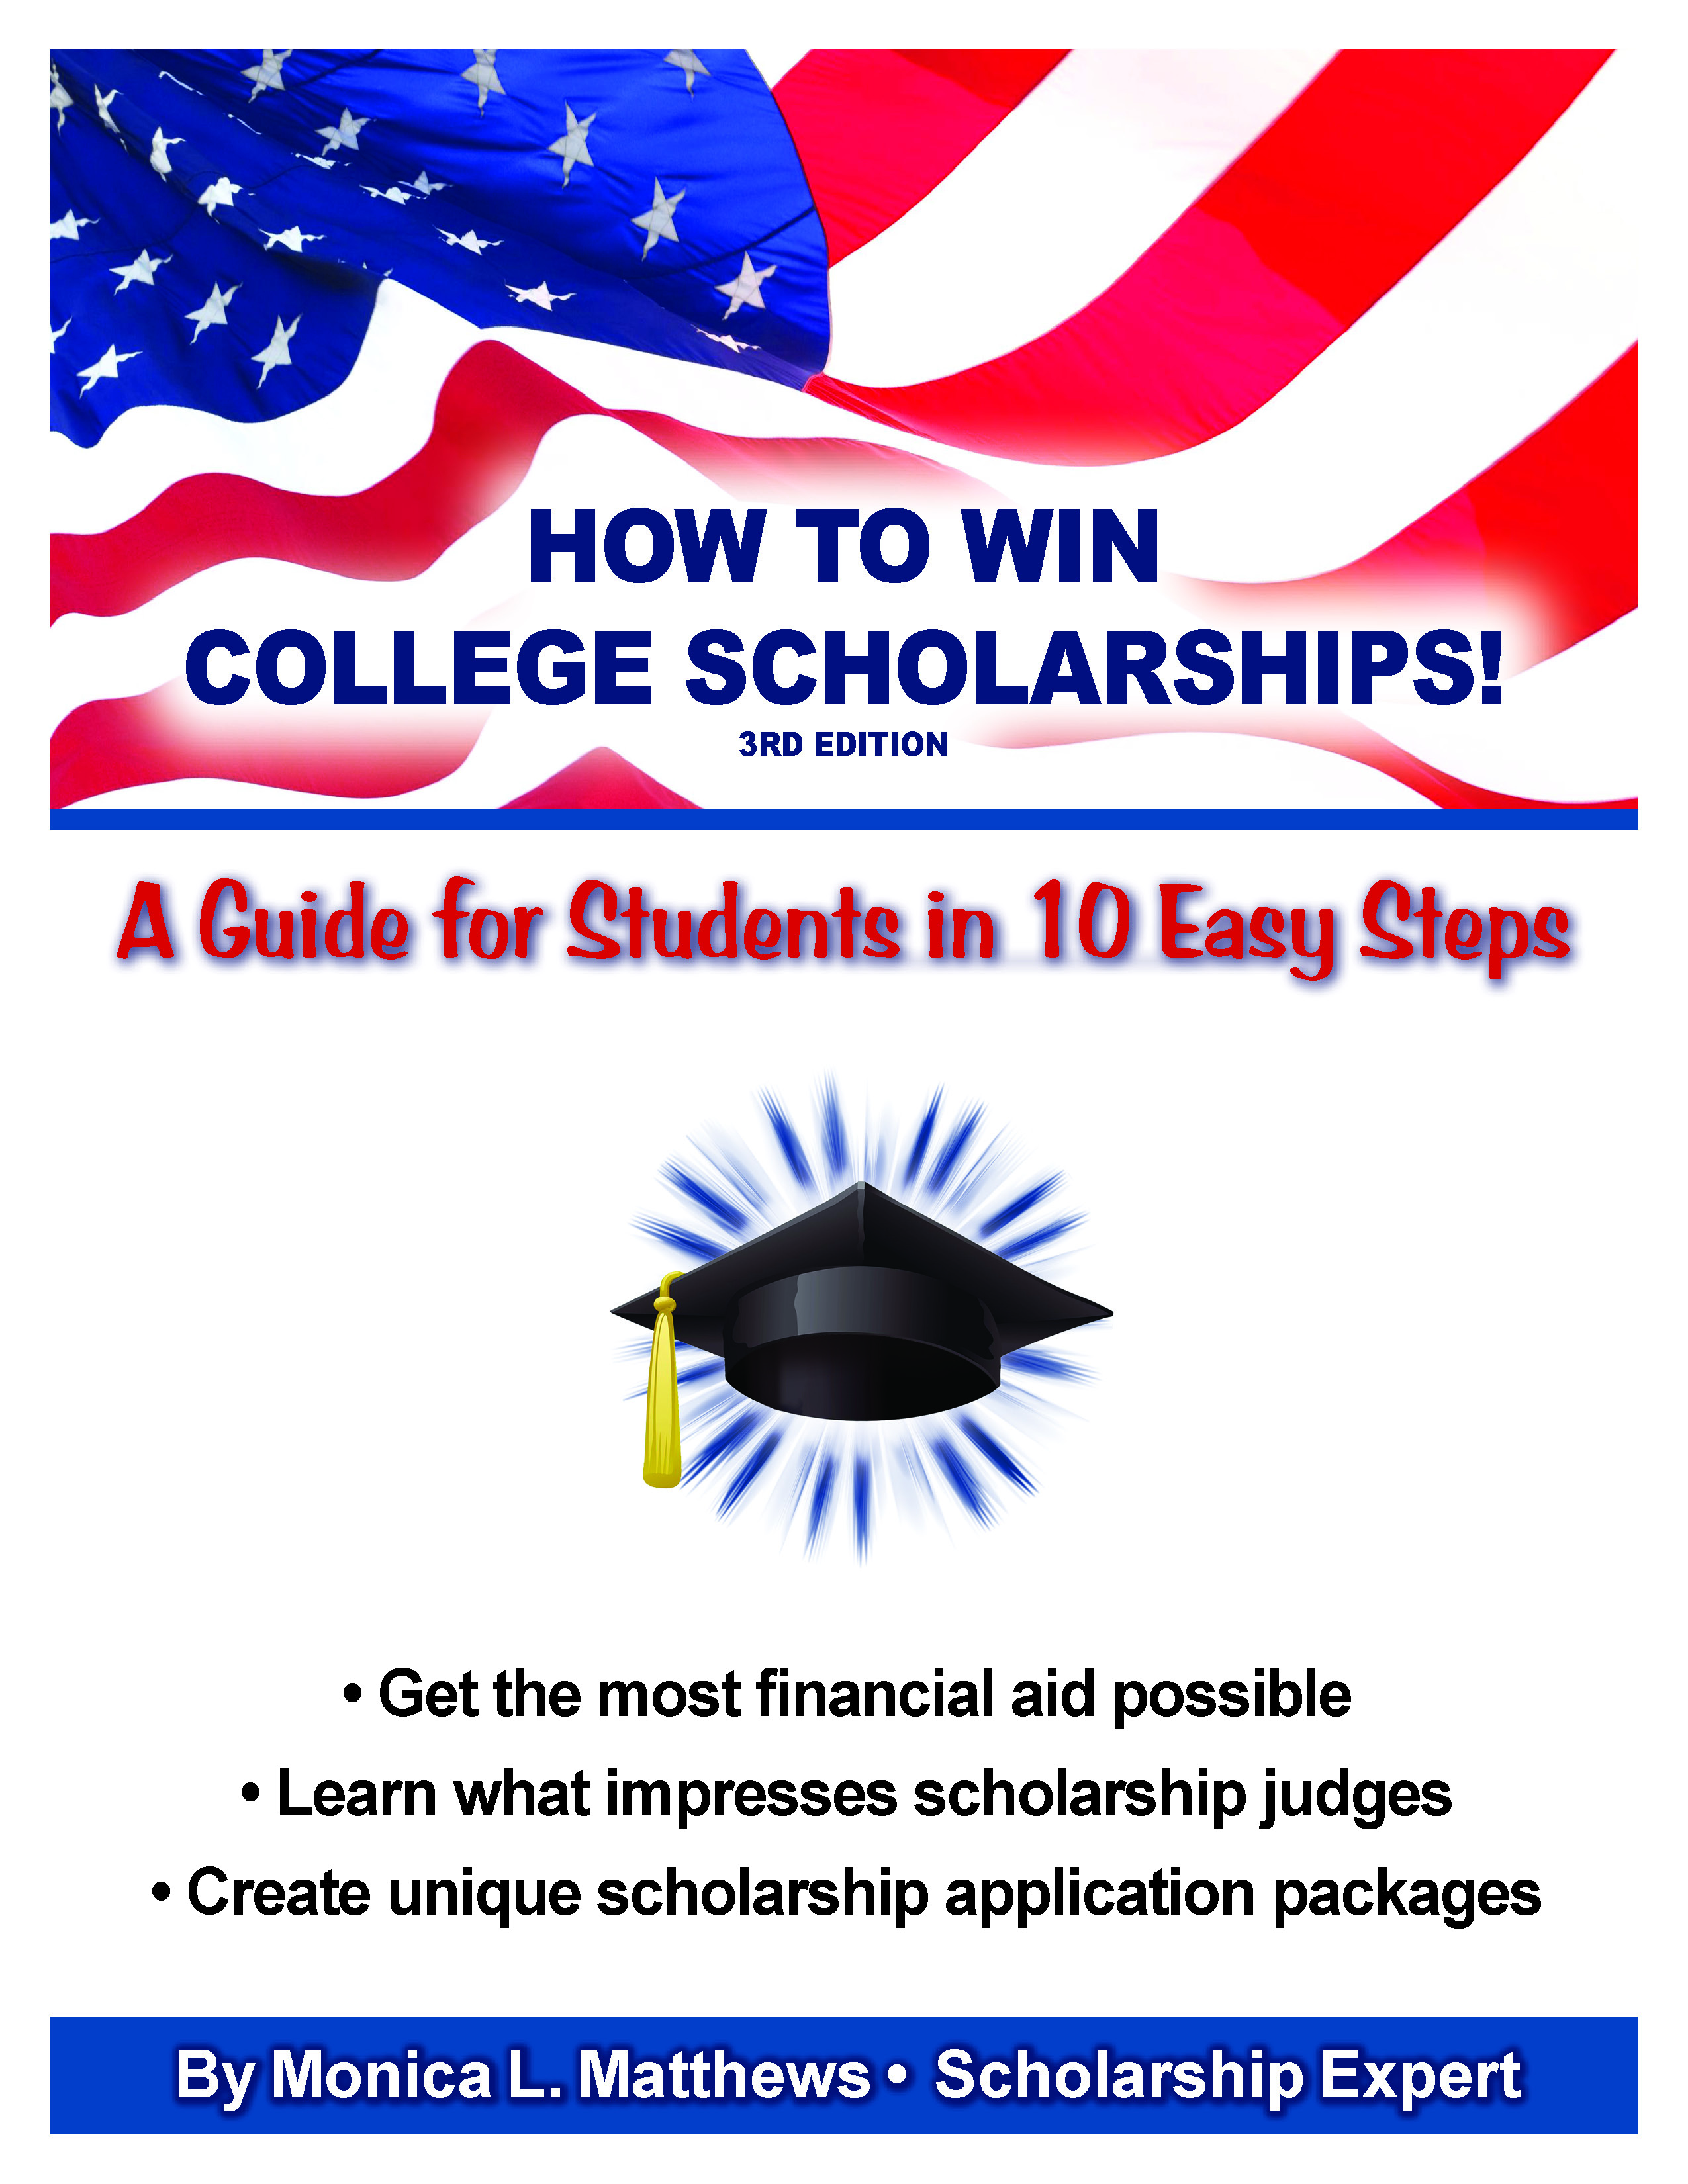 Business - Parental Advisors | How to Win College Scholarships